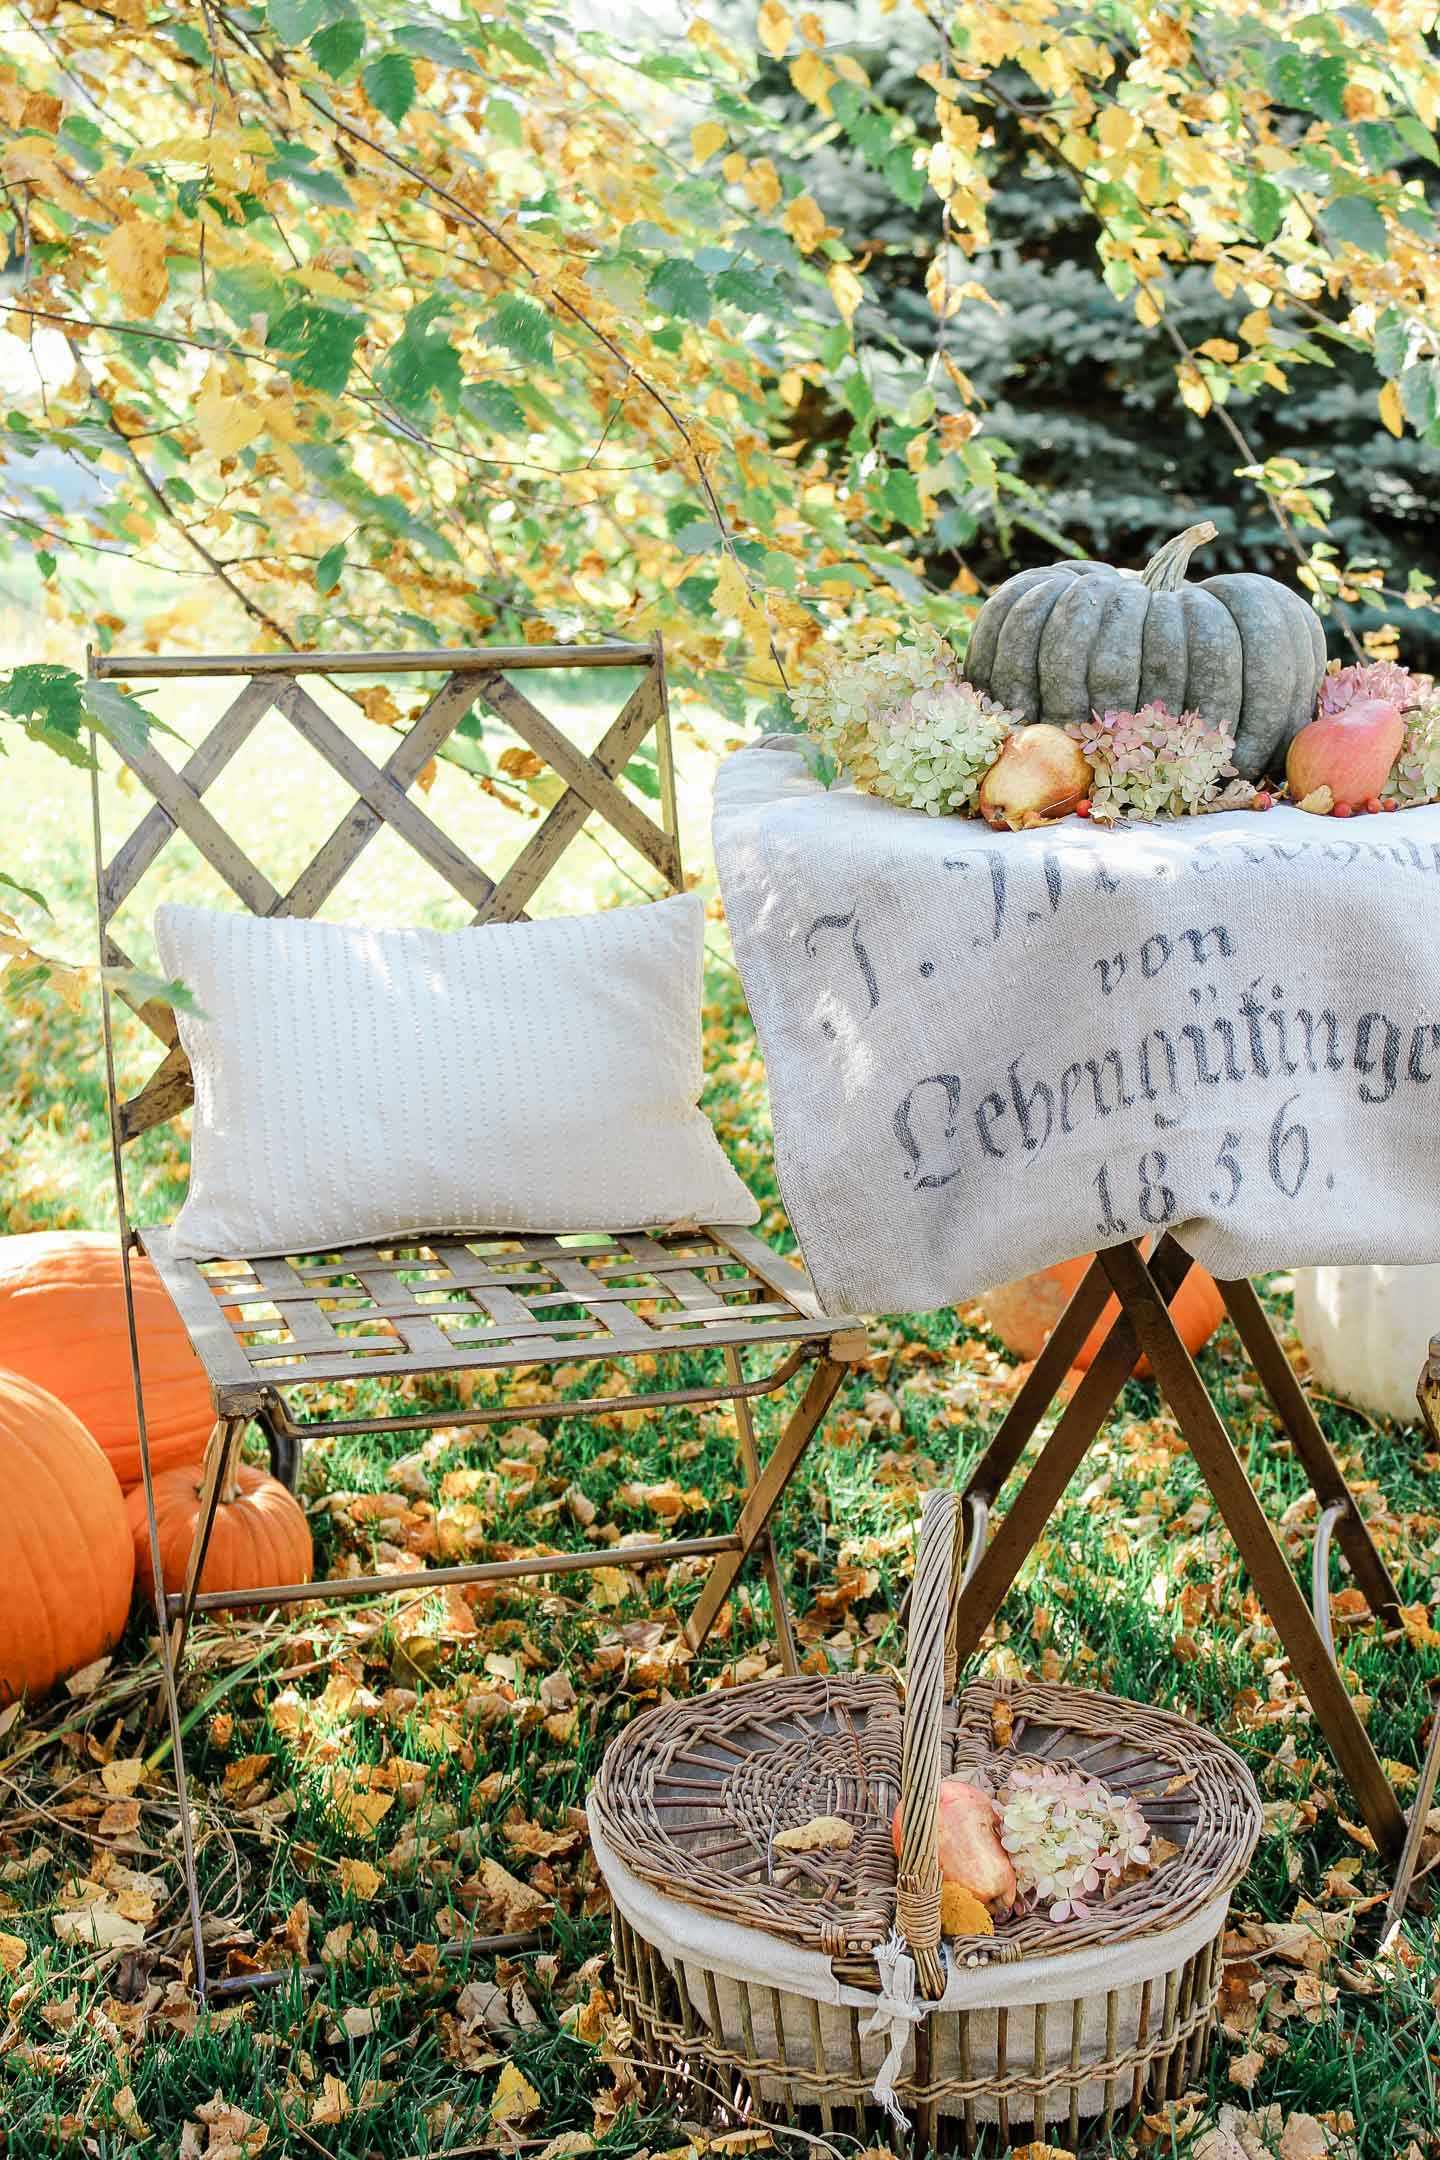 An outdoor table topped with a german grain sack, pumpkin, pears and flowers.